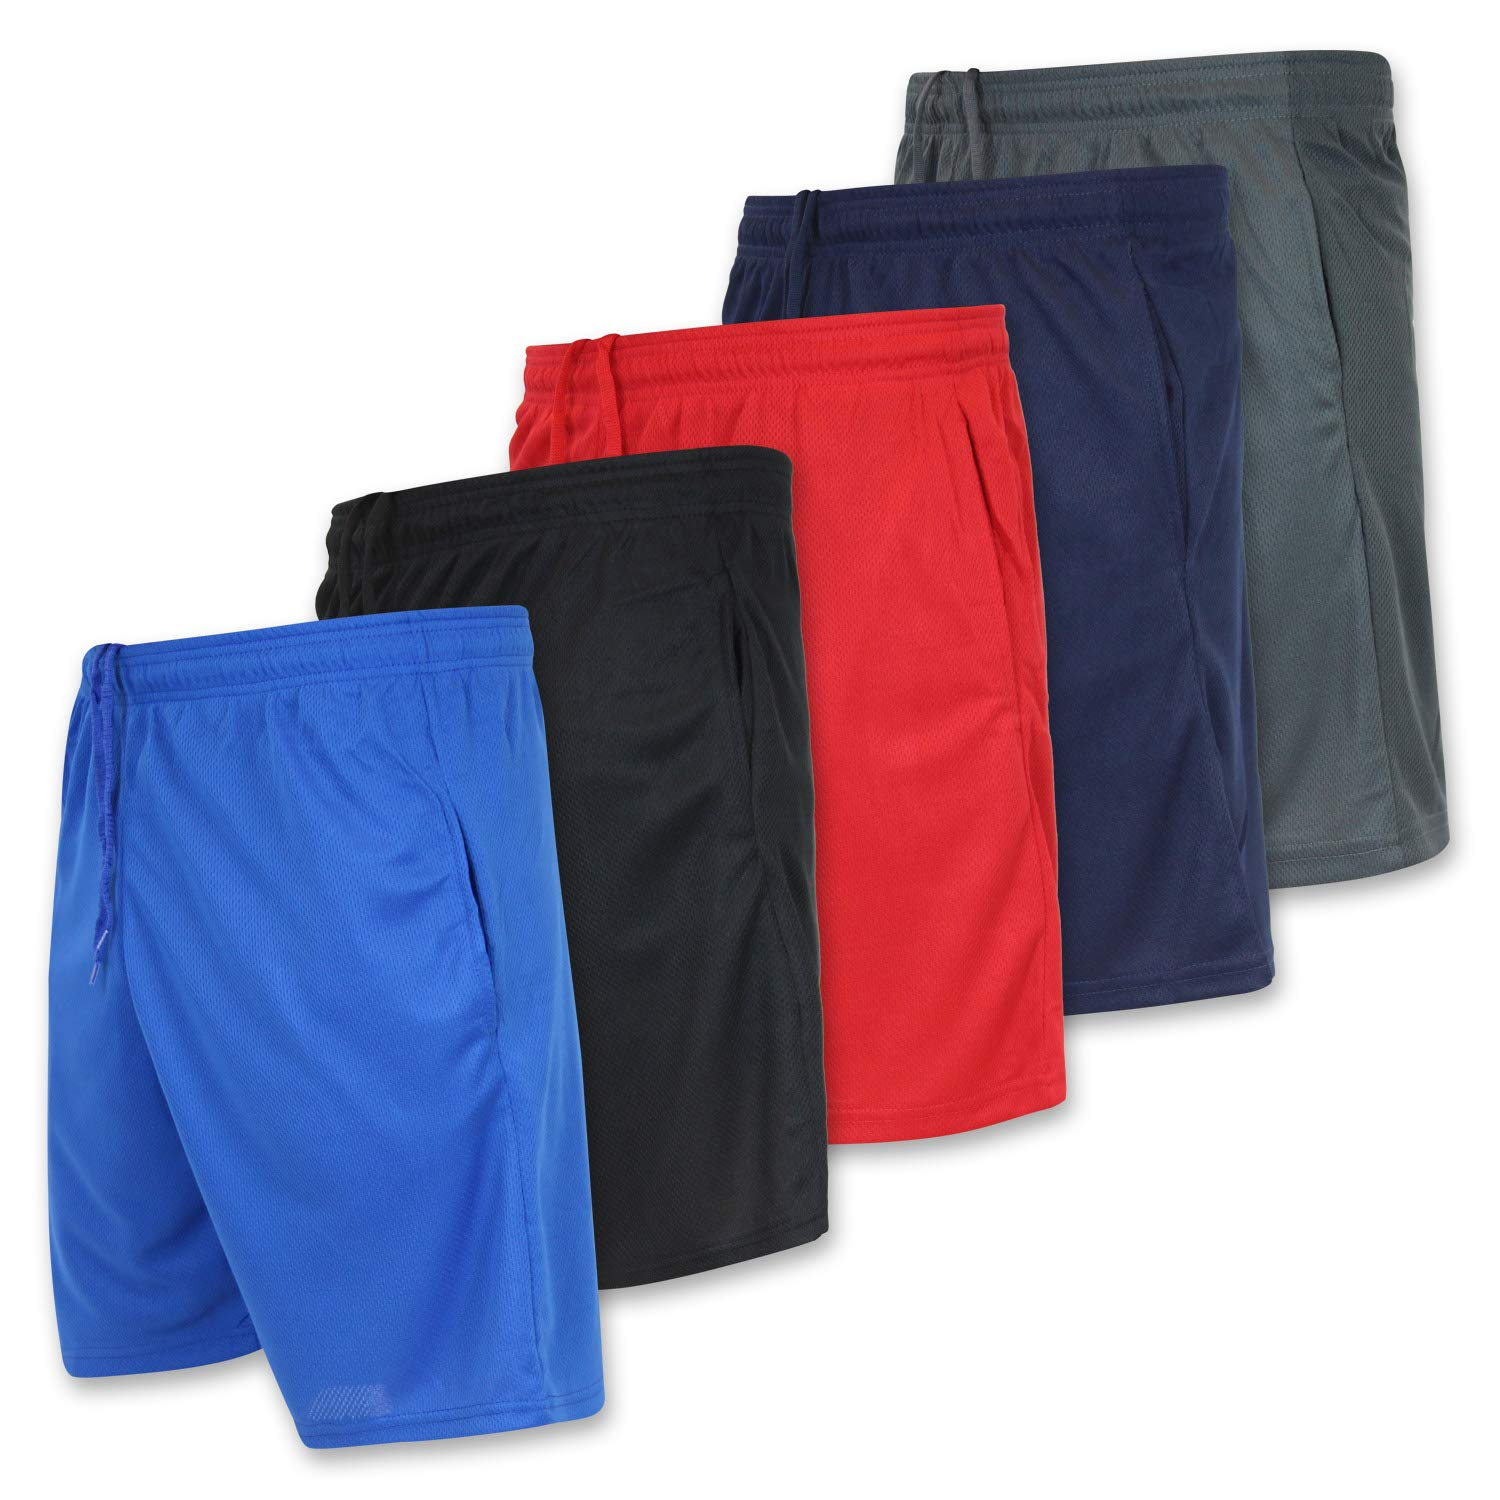 Men's Mesh Active Athletic Basketball Essentials Performance Gym Workout Clothes Sport Shorts Quick Dry - Set 7-5 Pack, S